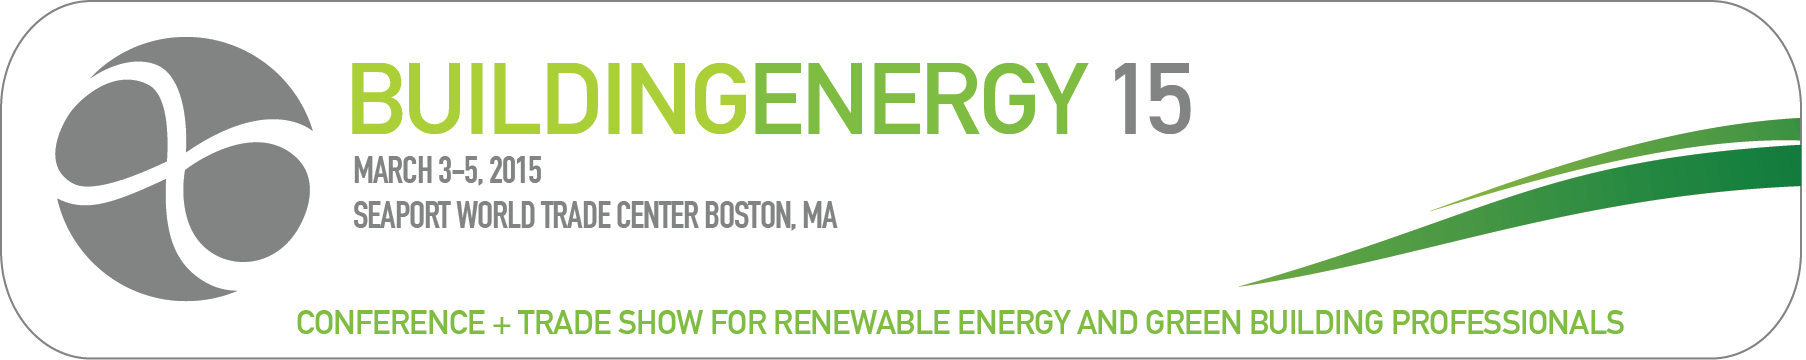 BuildingEnergy 15